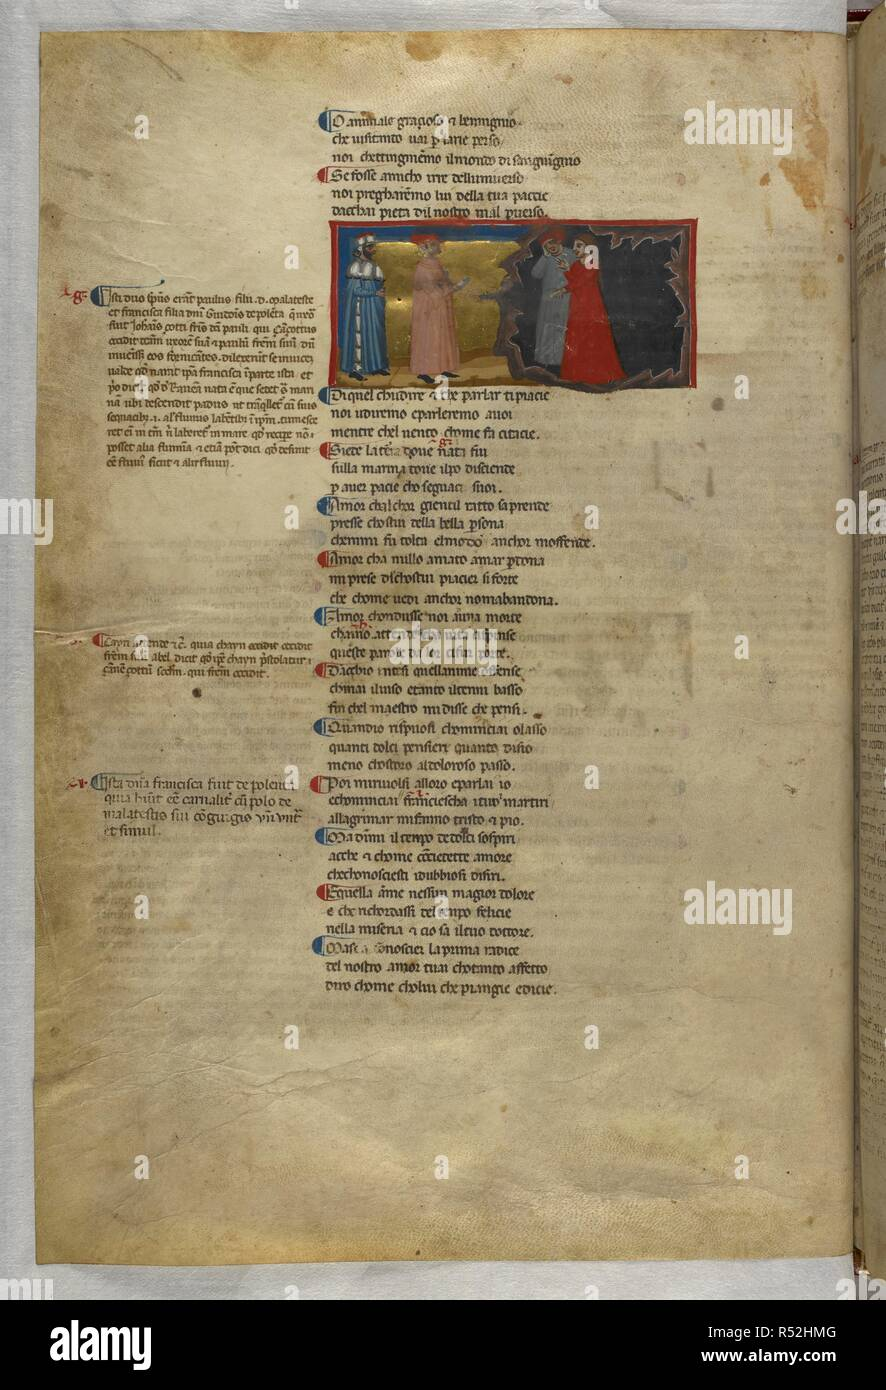 Inferno: Dante and Virgil meeting Paolo and Francesca. Dante Alighieri, Divina Commedia ( The Divine Comedy ), with a commentary in Latin. 1st half of the 14th century. Source: Egerton 943, f.11v. Language: Italian, Latin. - Stock Image